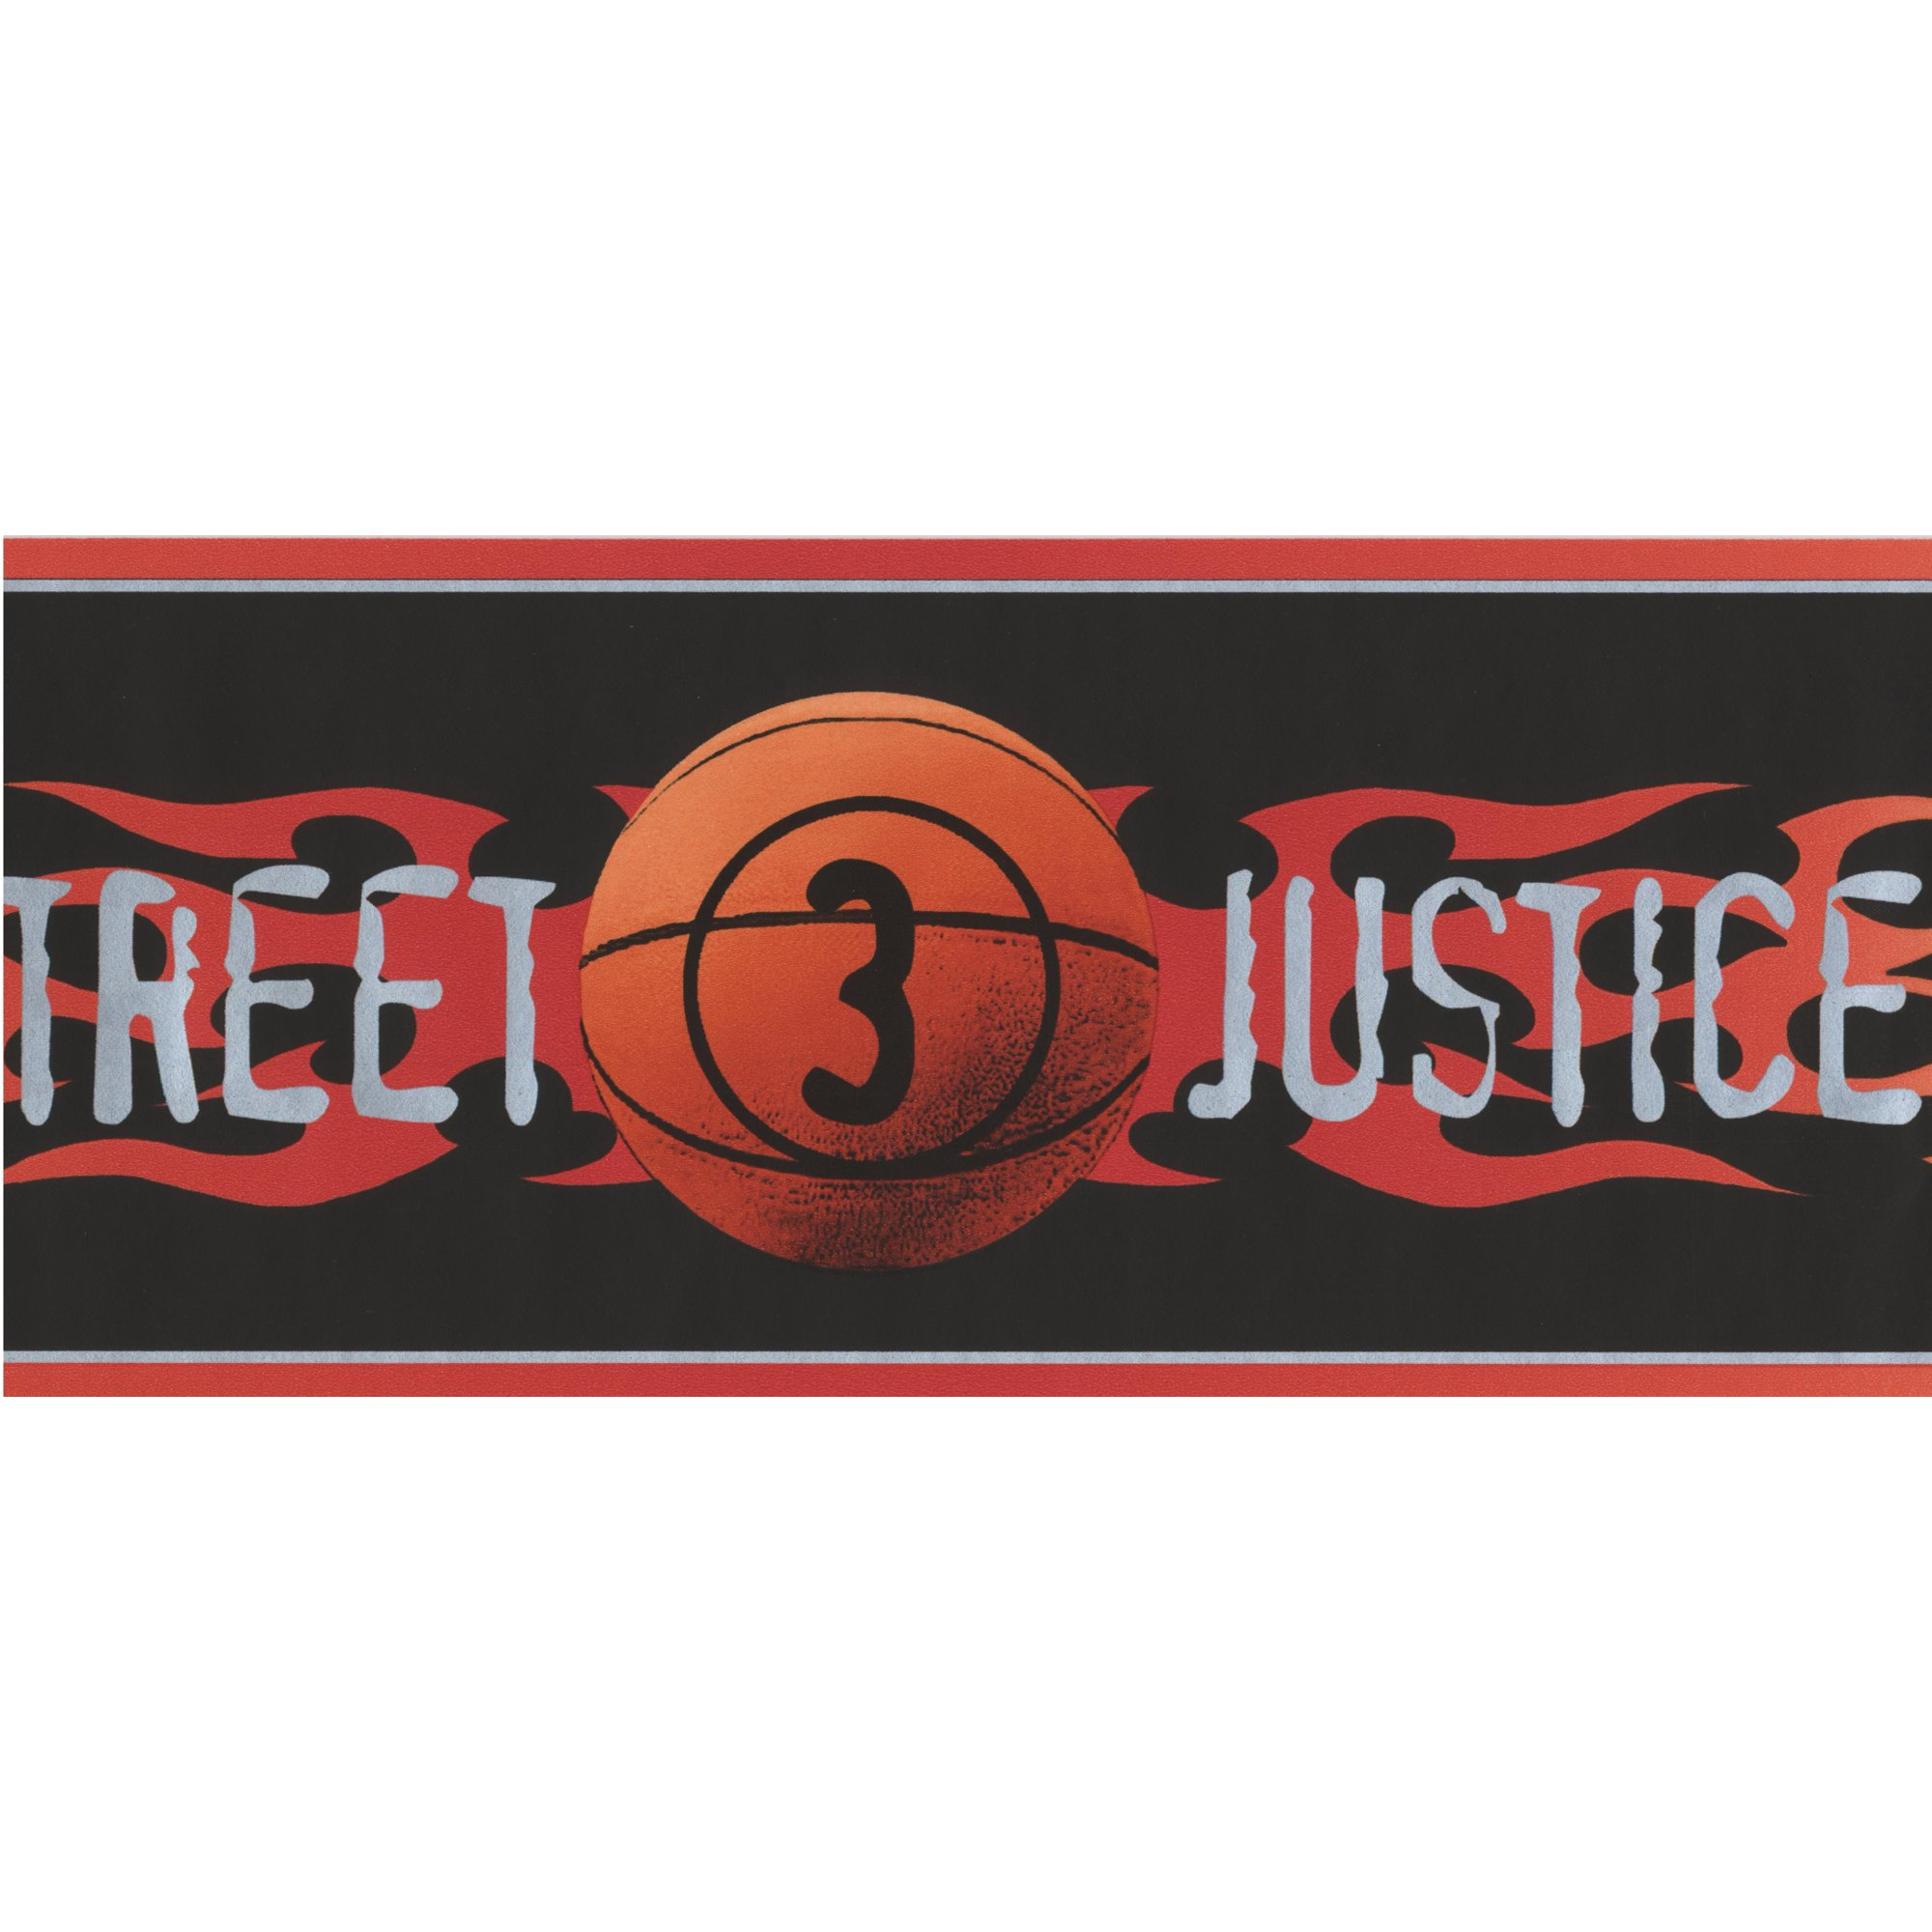 Street Justice Basketball Flames Black Wallpaper Border For Teens Roll 15 X 5